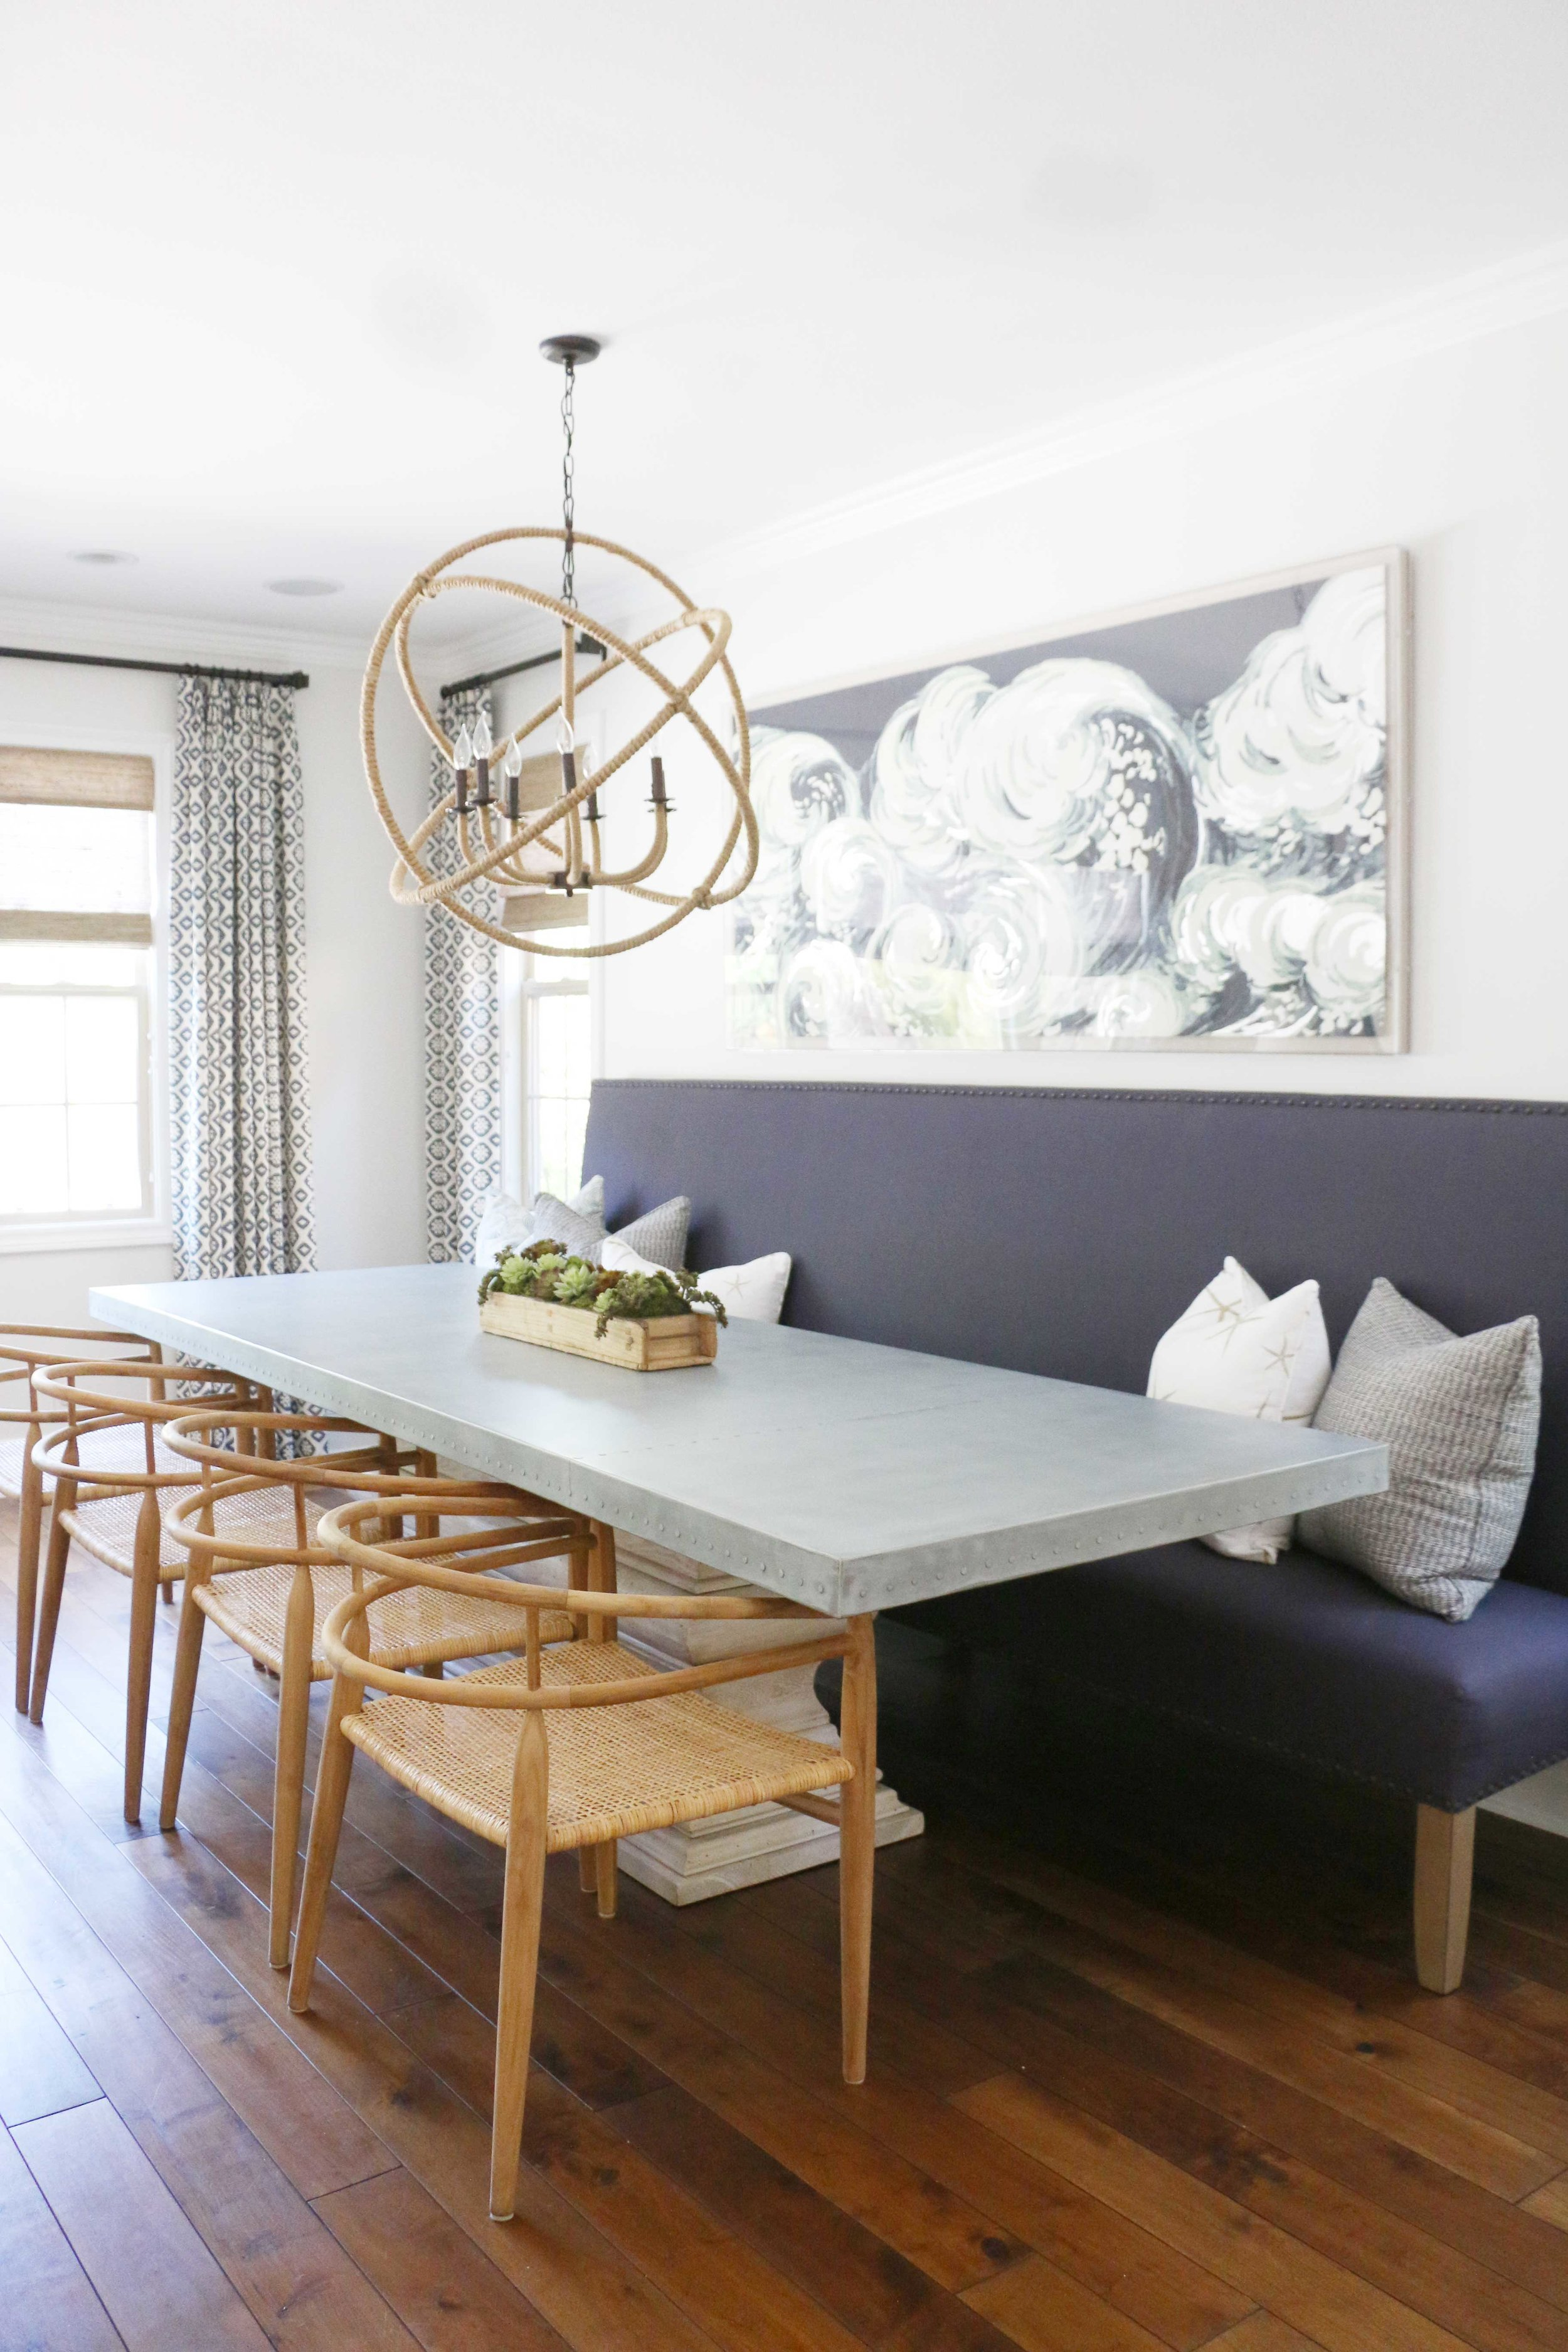 A built-in upholstered dining bench is great for extra seating and maximizes space in this coastal home. For more ideas on how to use benches in your home, head to this blog post!